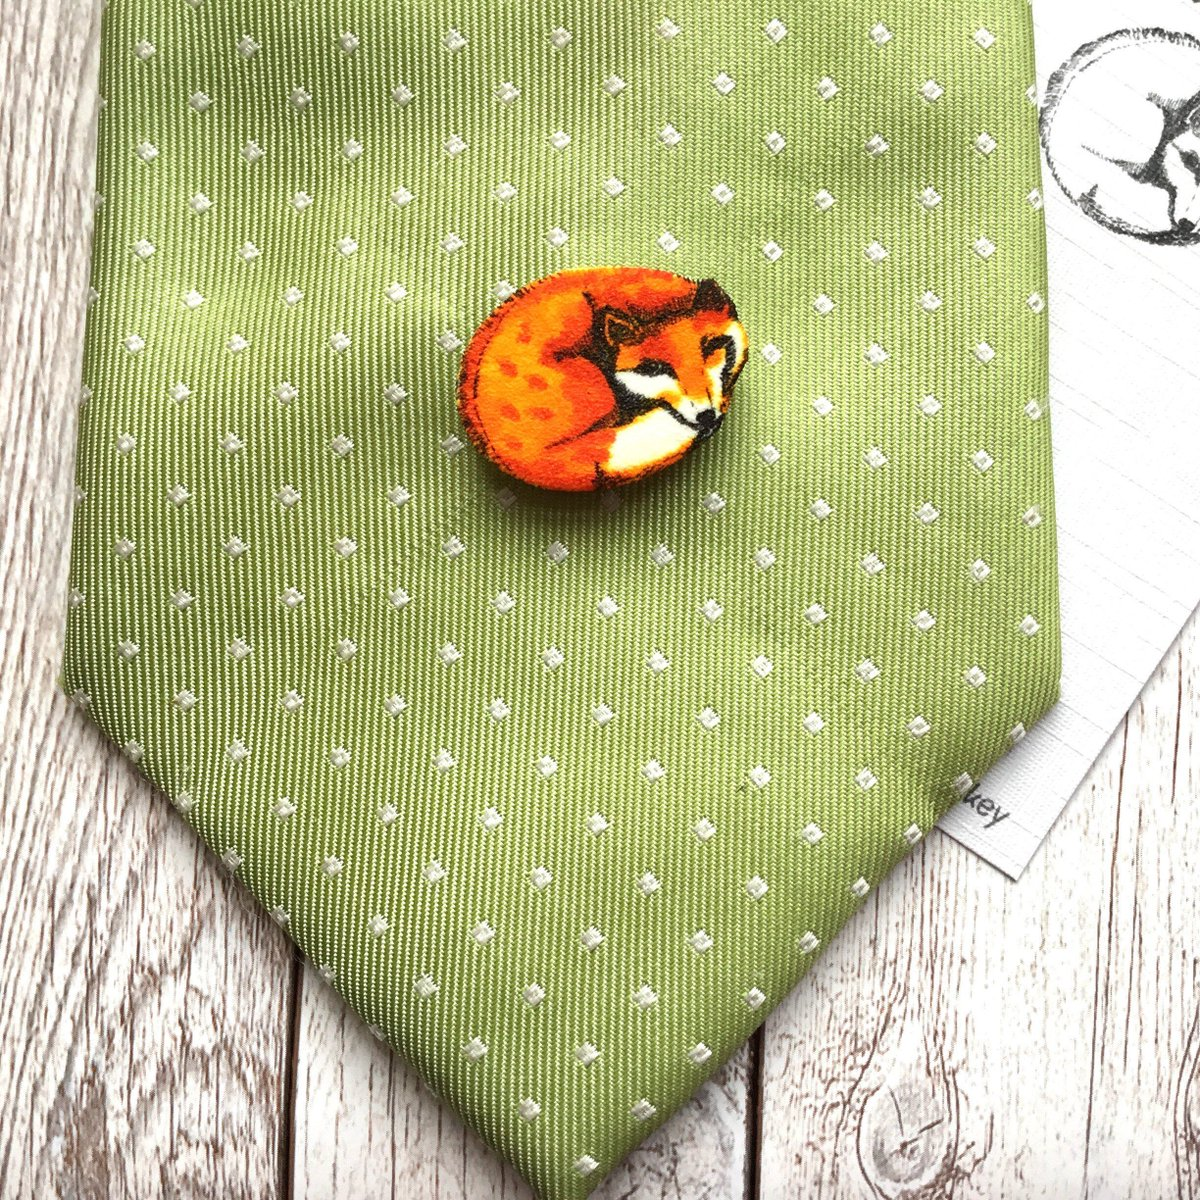 Curled Fox Tie Tack Pin Dad Birthday Gift Husband Anniversary Brother Animal Lover Gifts Thank You Male Teacher